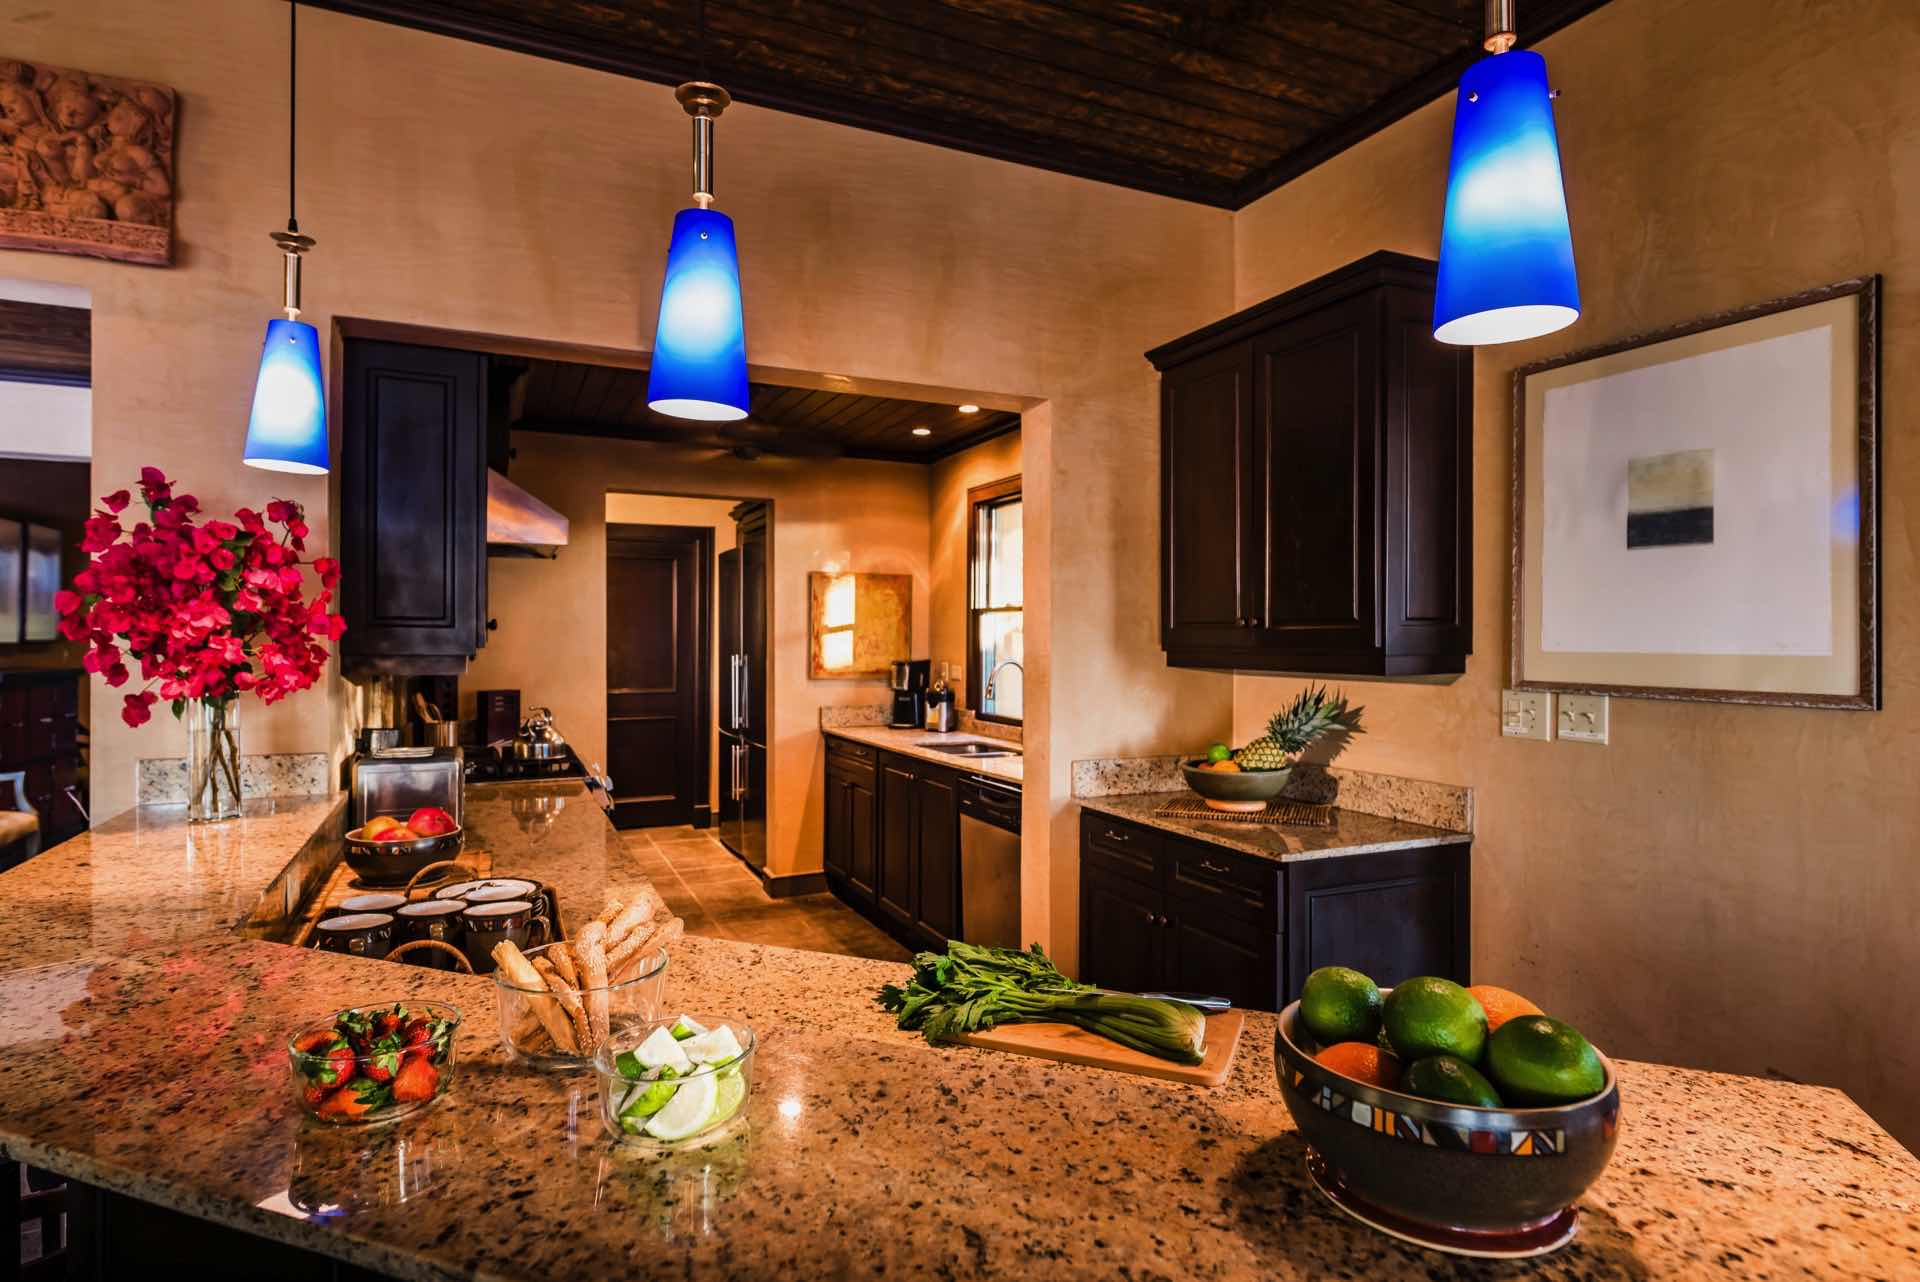 Beautiful kitchen with granite counter-tops